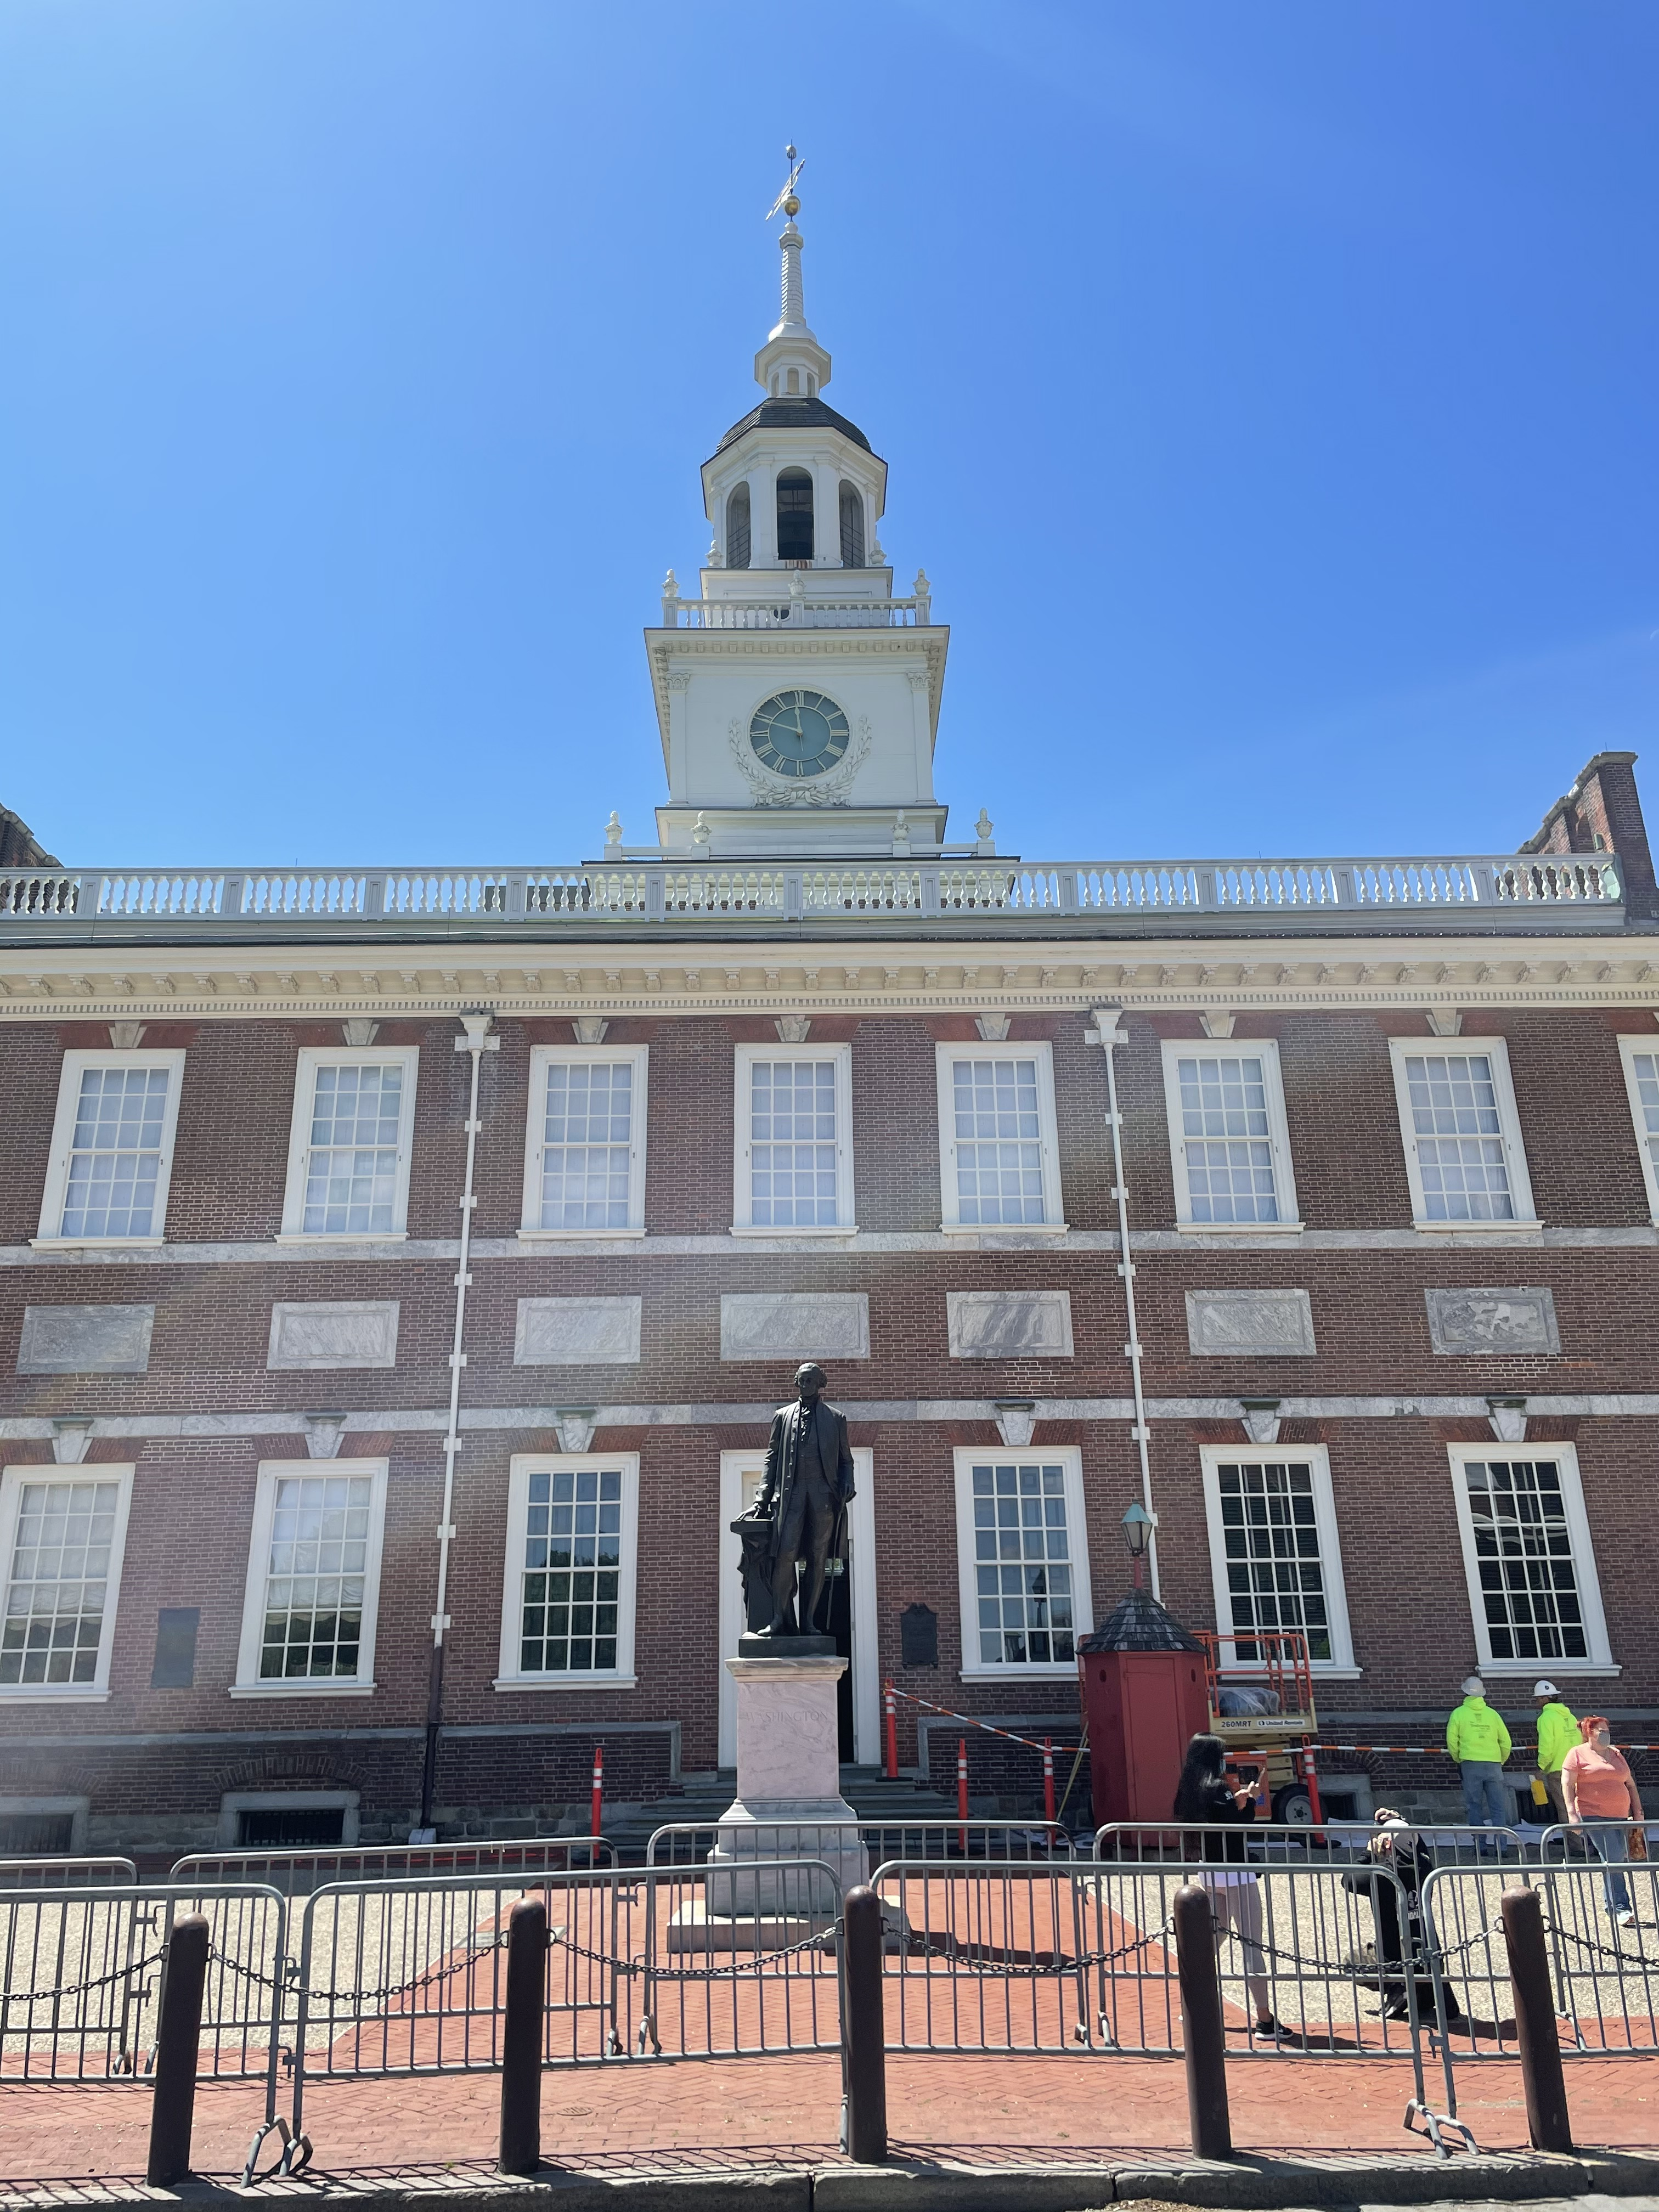 Statue of George Washington in front of Independence Hall